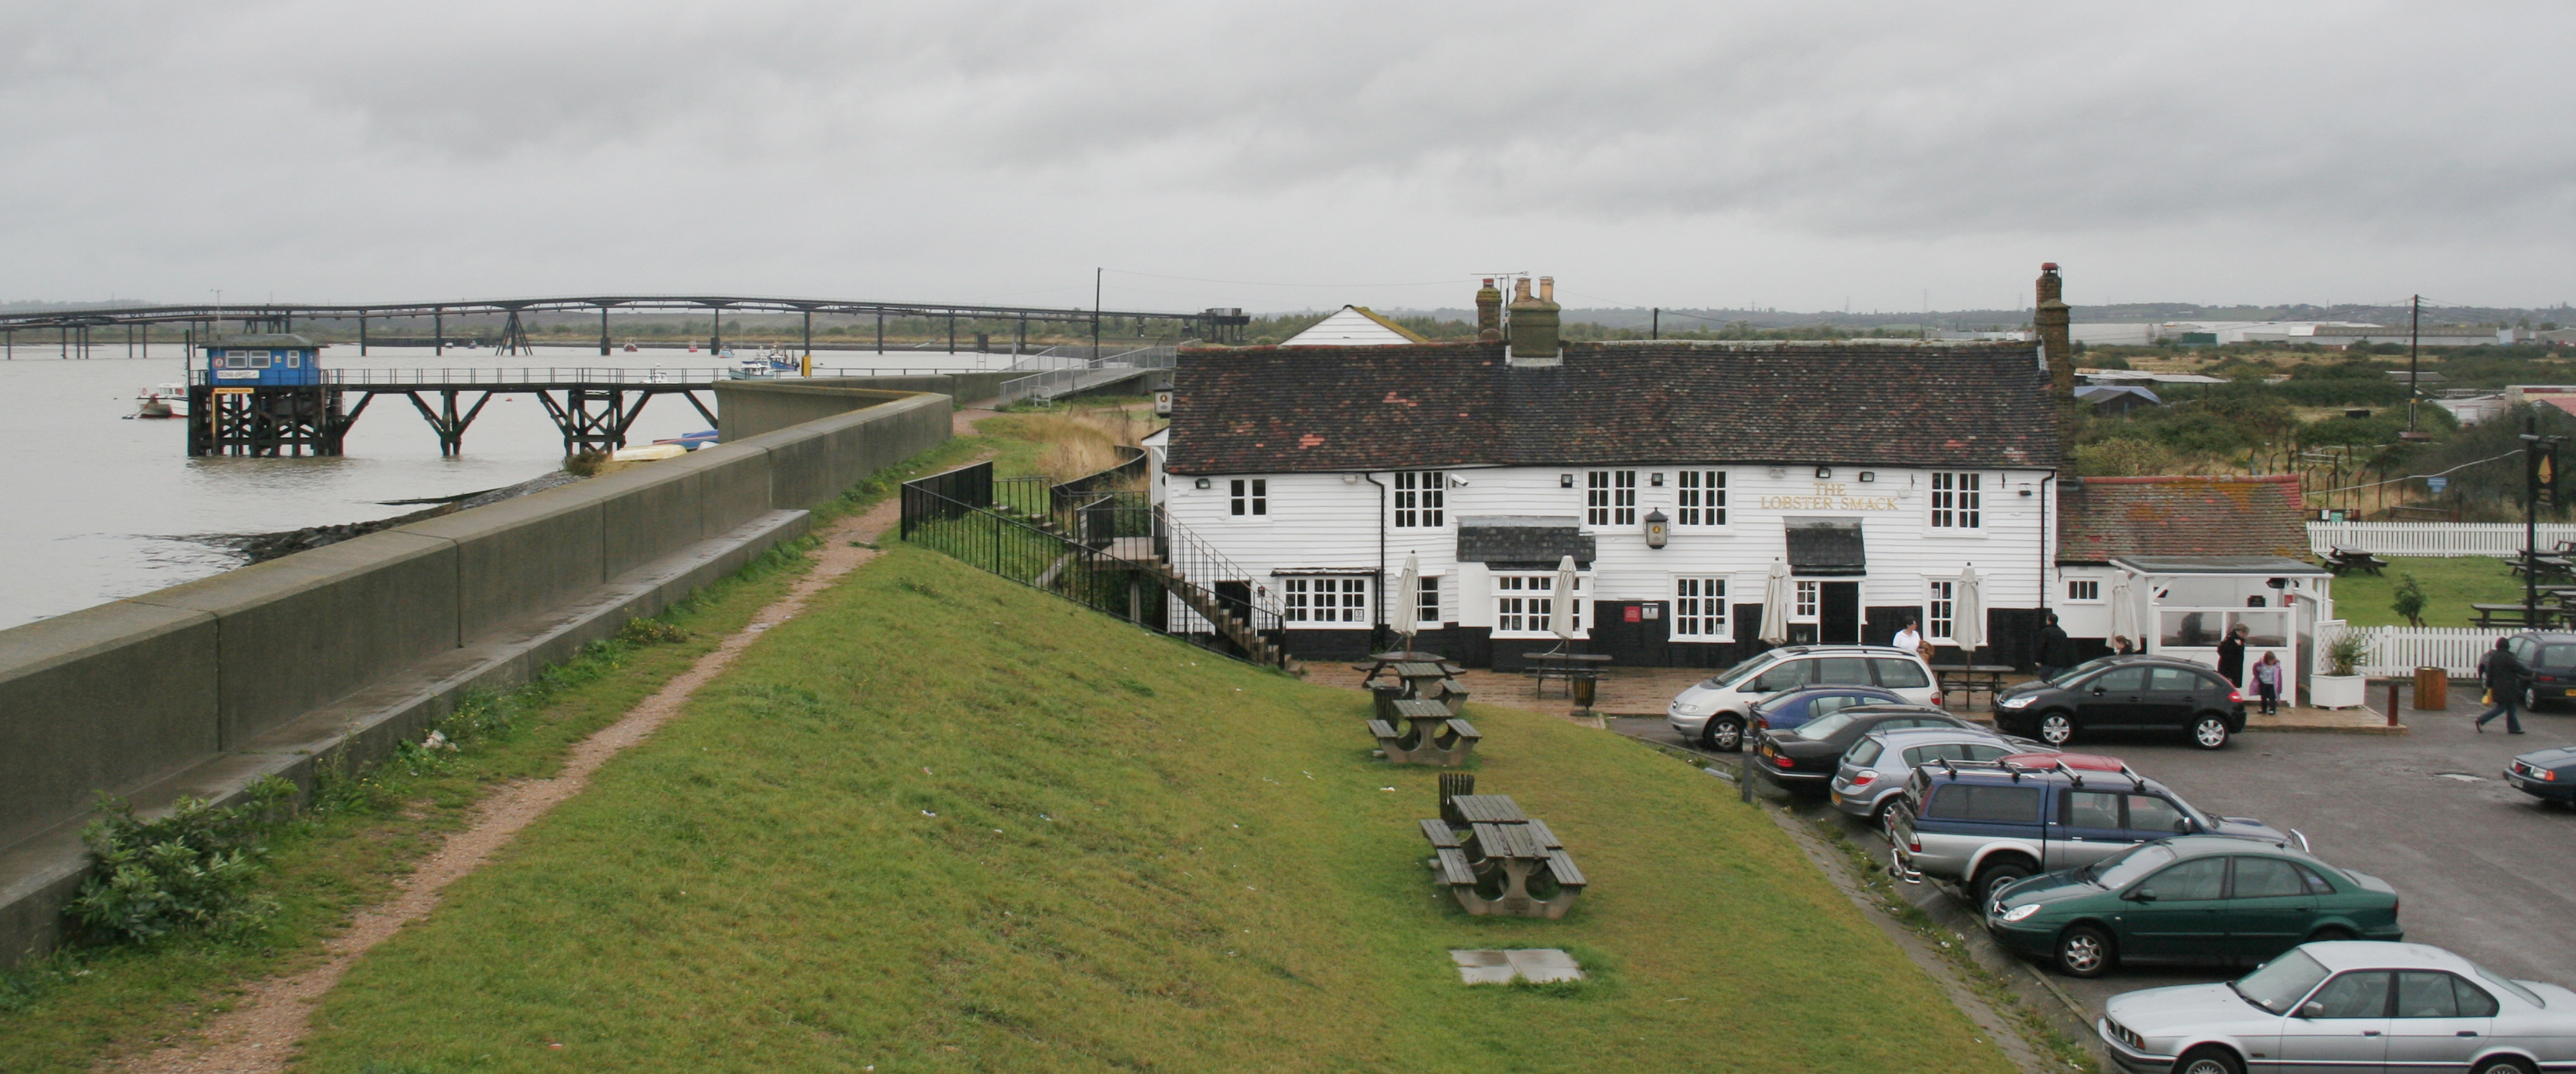 File:Lobster Smack Public House, Canvey Island.jpg - Wikimedia Commons